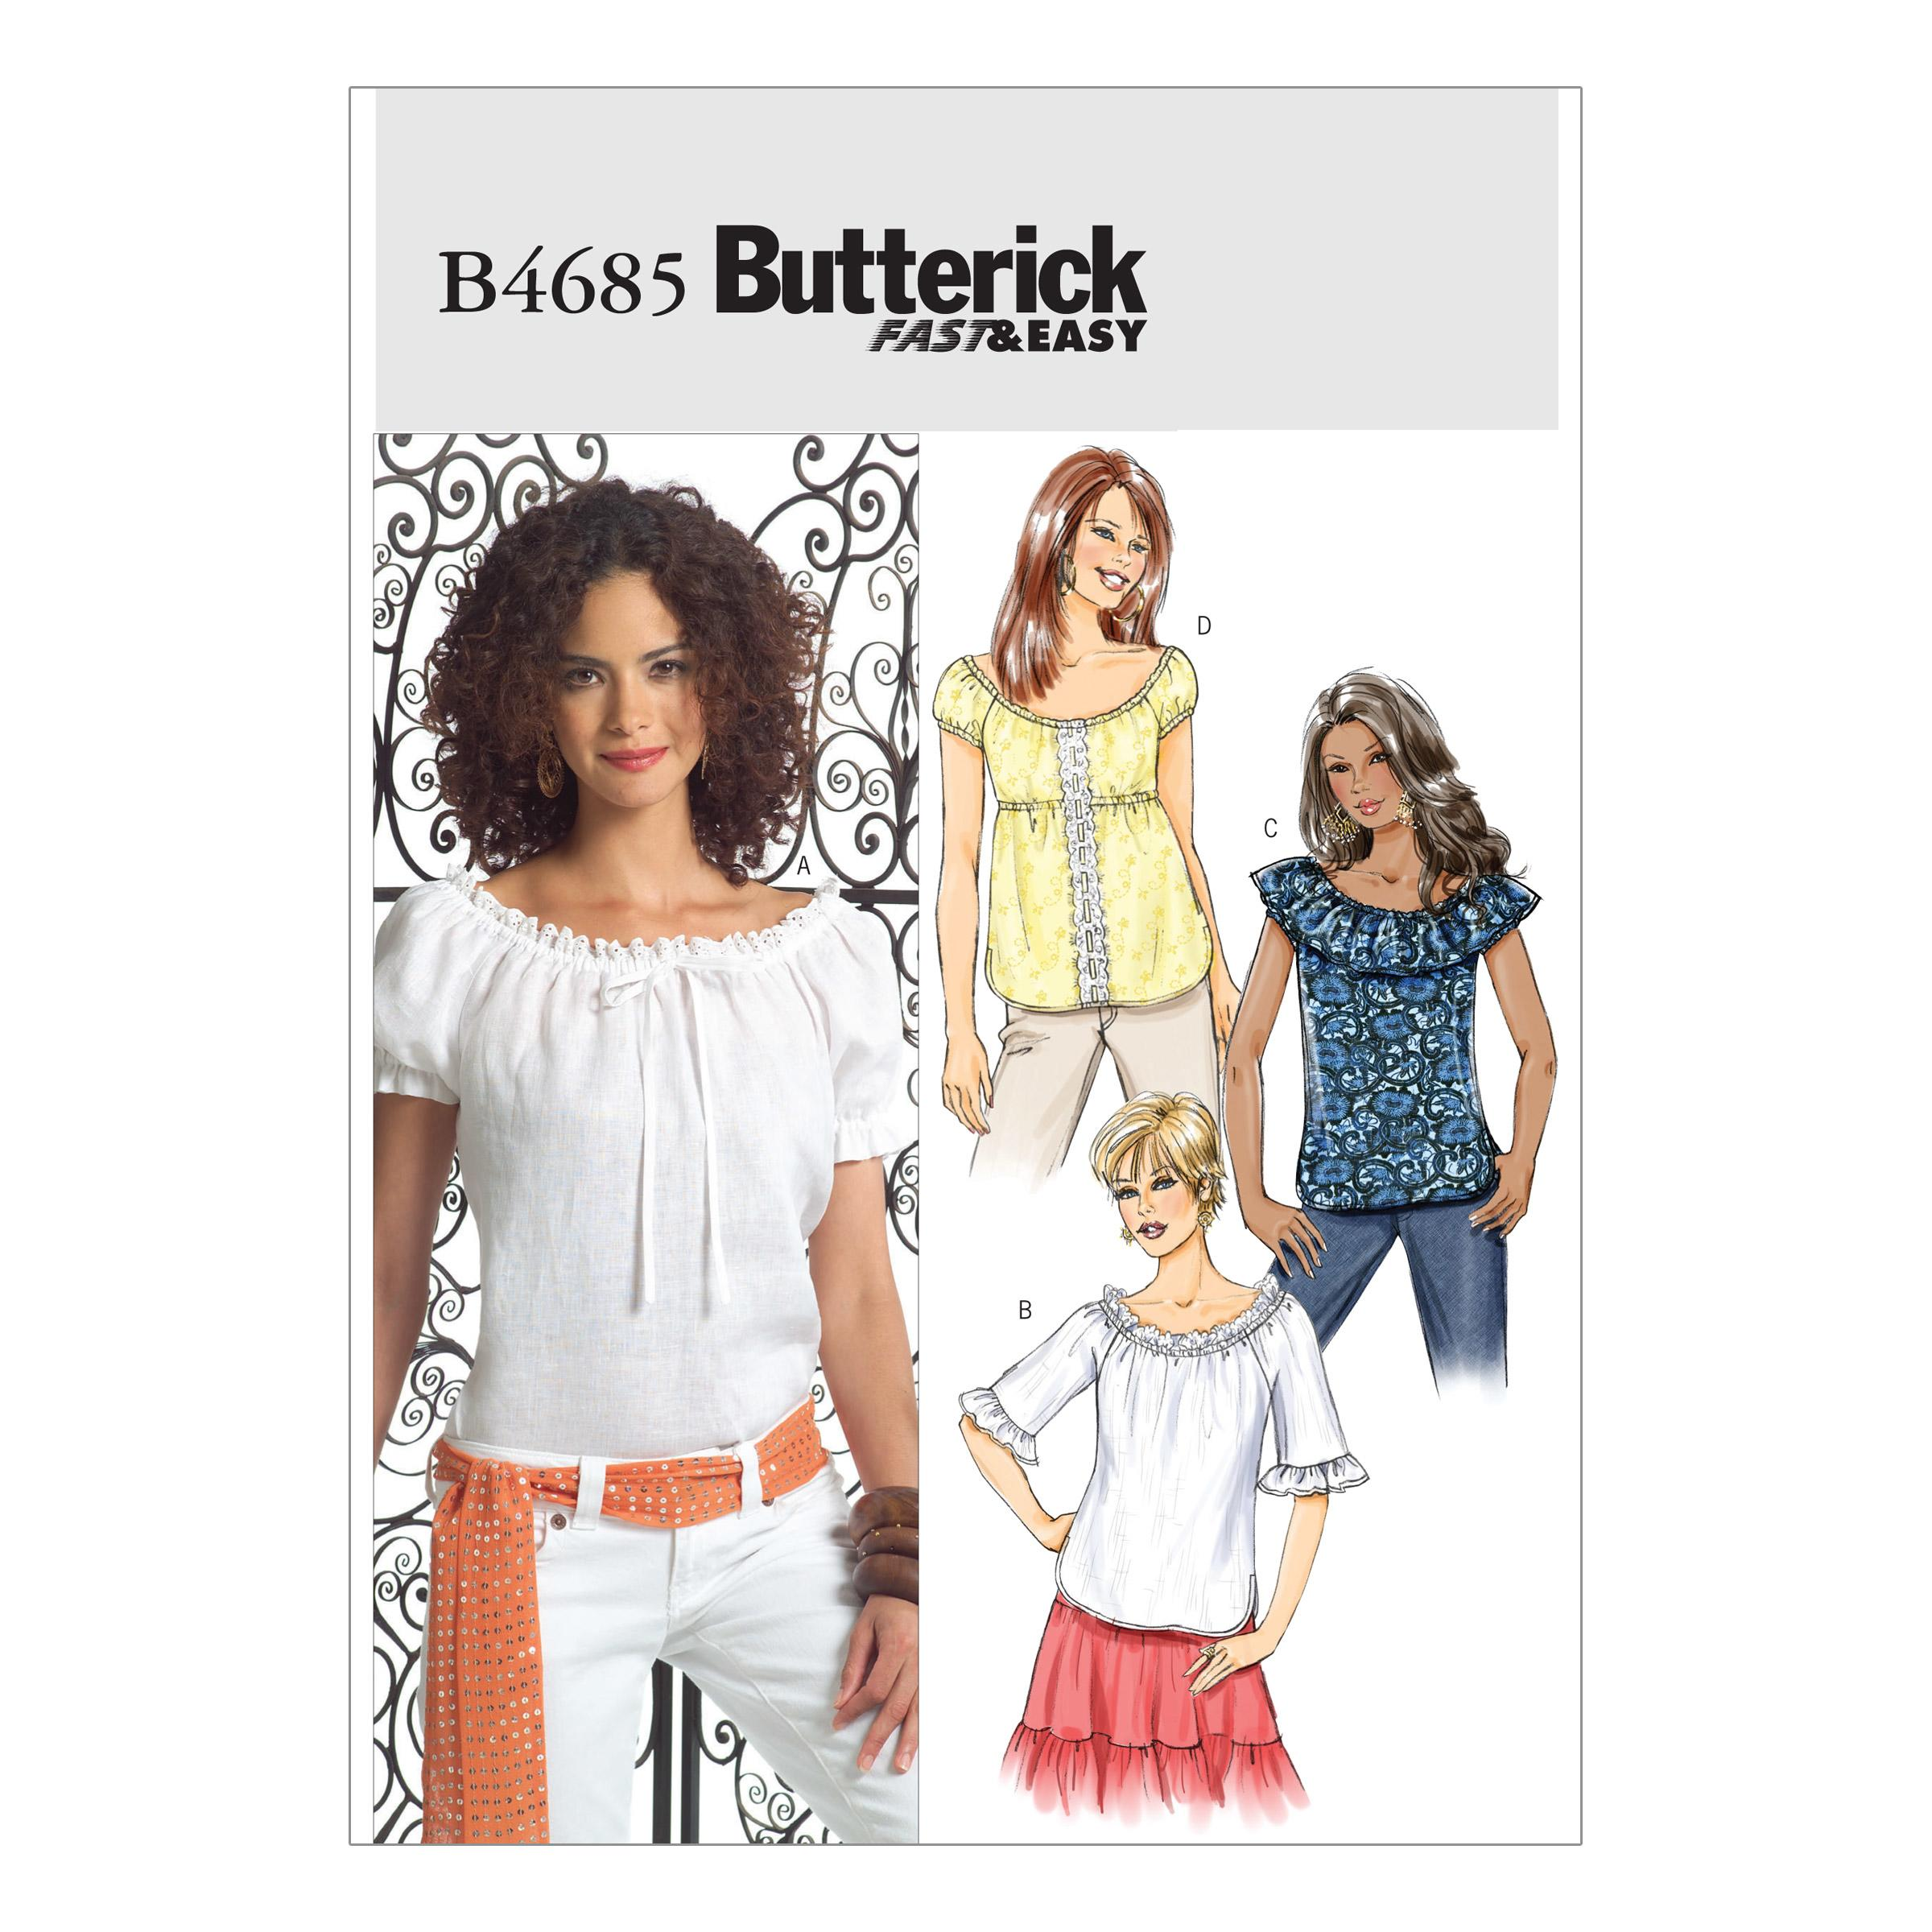 Butterick B4685 Misses' Top